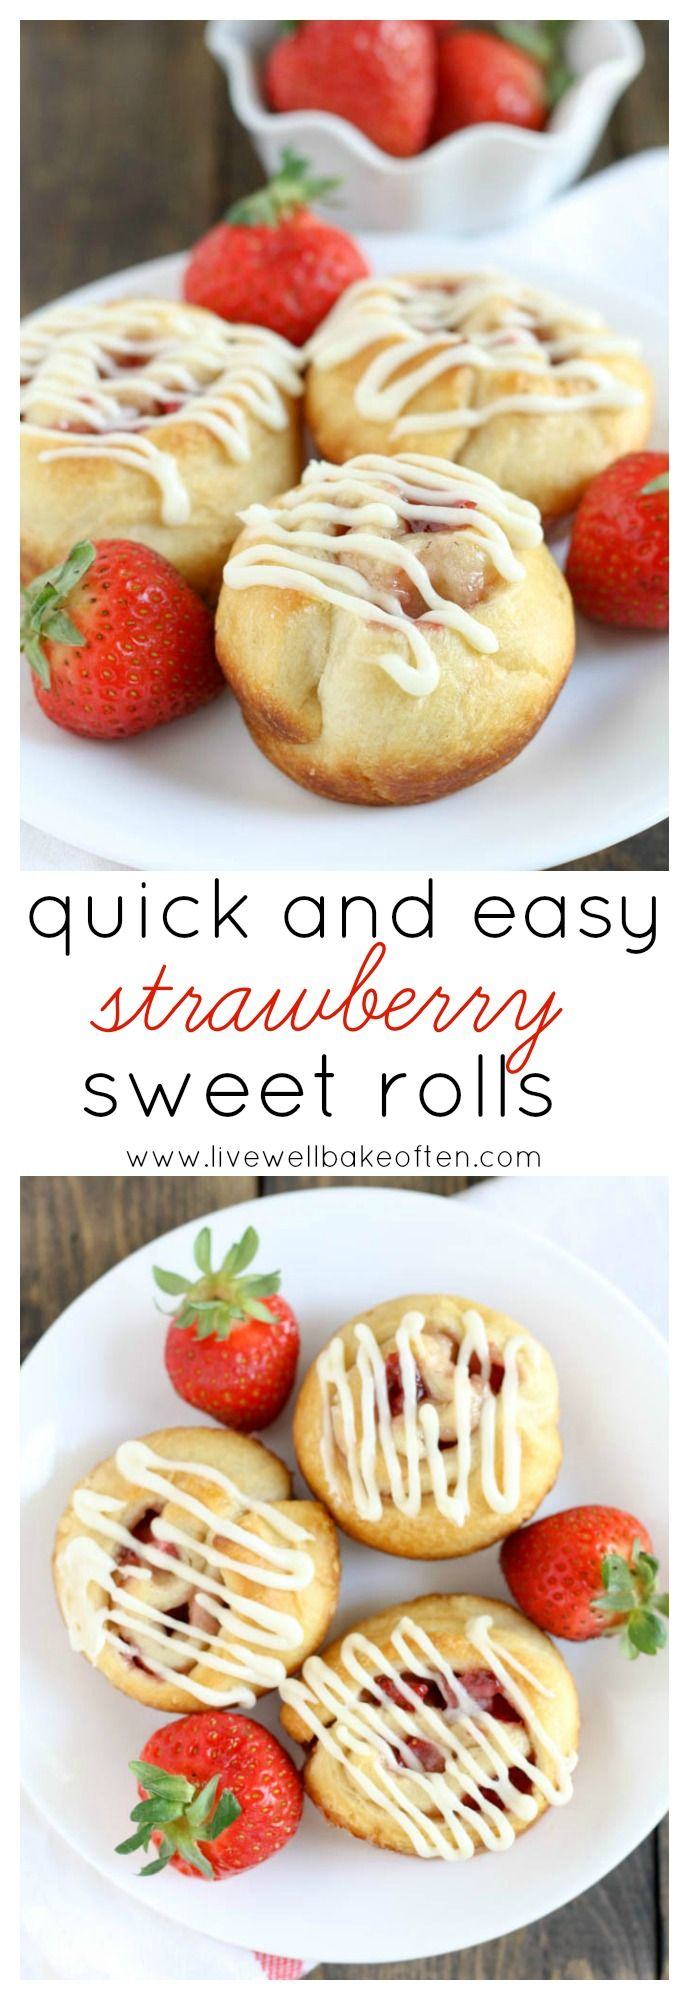 Easy strawberry sweet rolls topped with a delicious cream cheese frosting. These are perfect for breakfast or brunch and even make a great dessert!